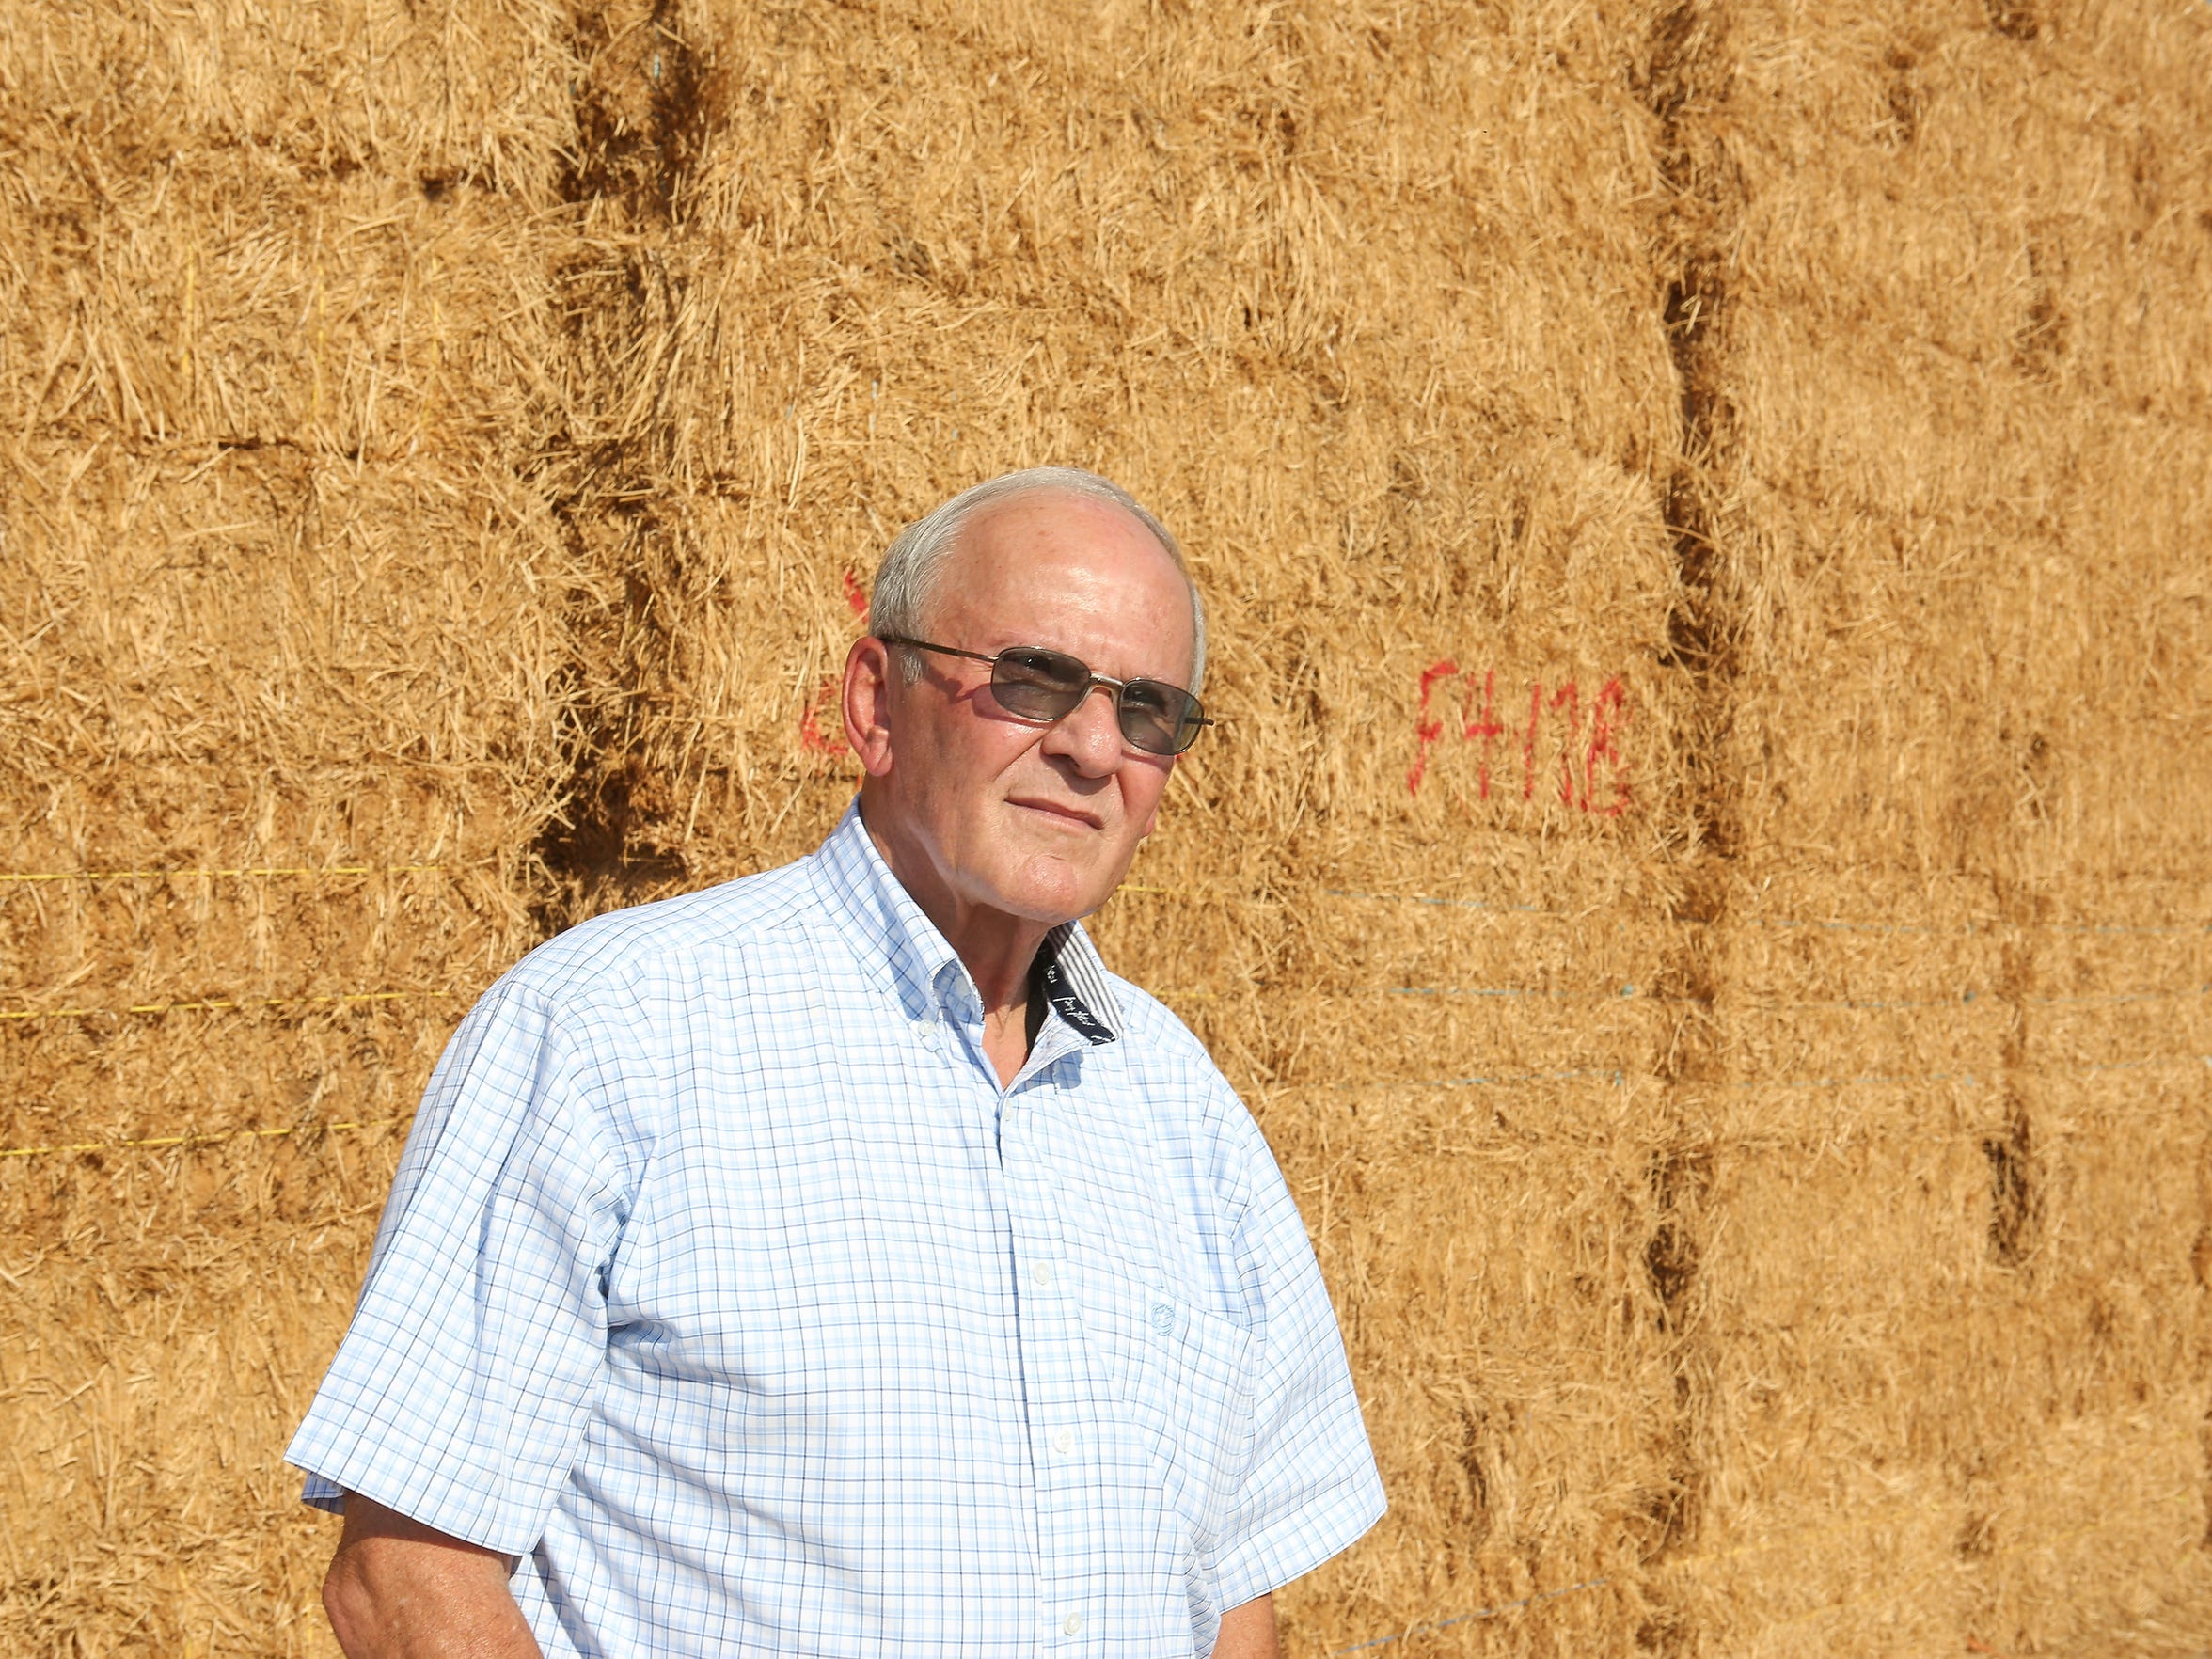 Palo Verde Irrigation District President Bart Fisher talks about his district's relationship with the Metropolitan Water District, standing beside hay bales on his farm.